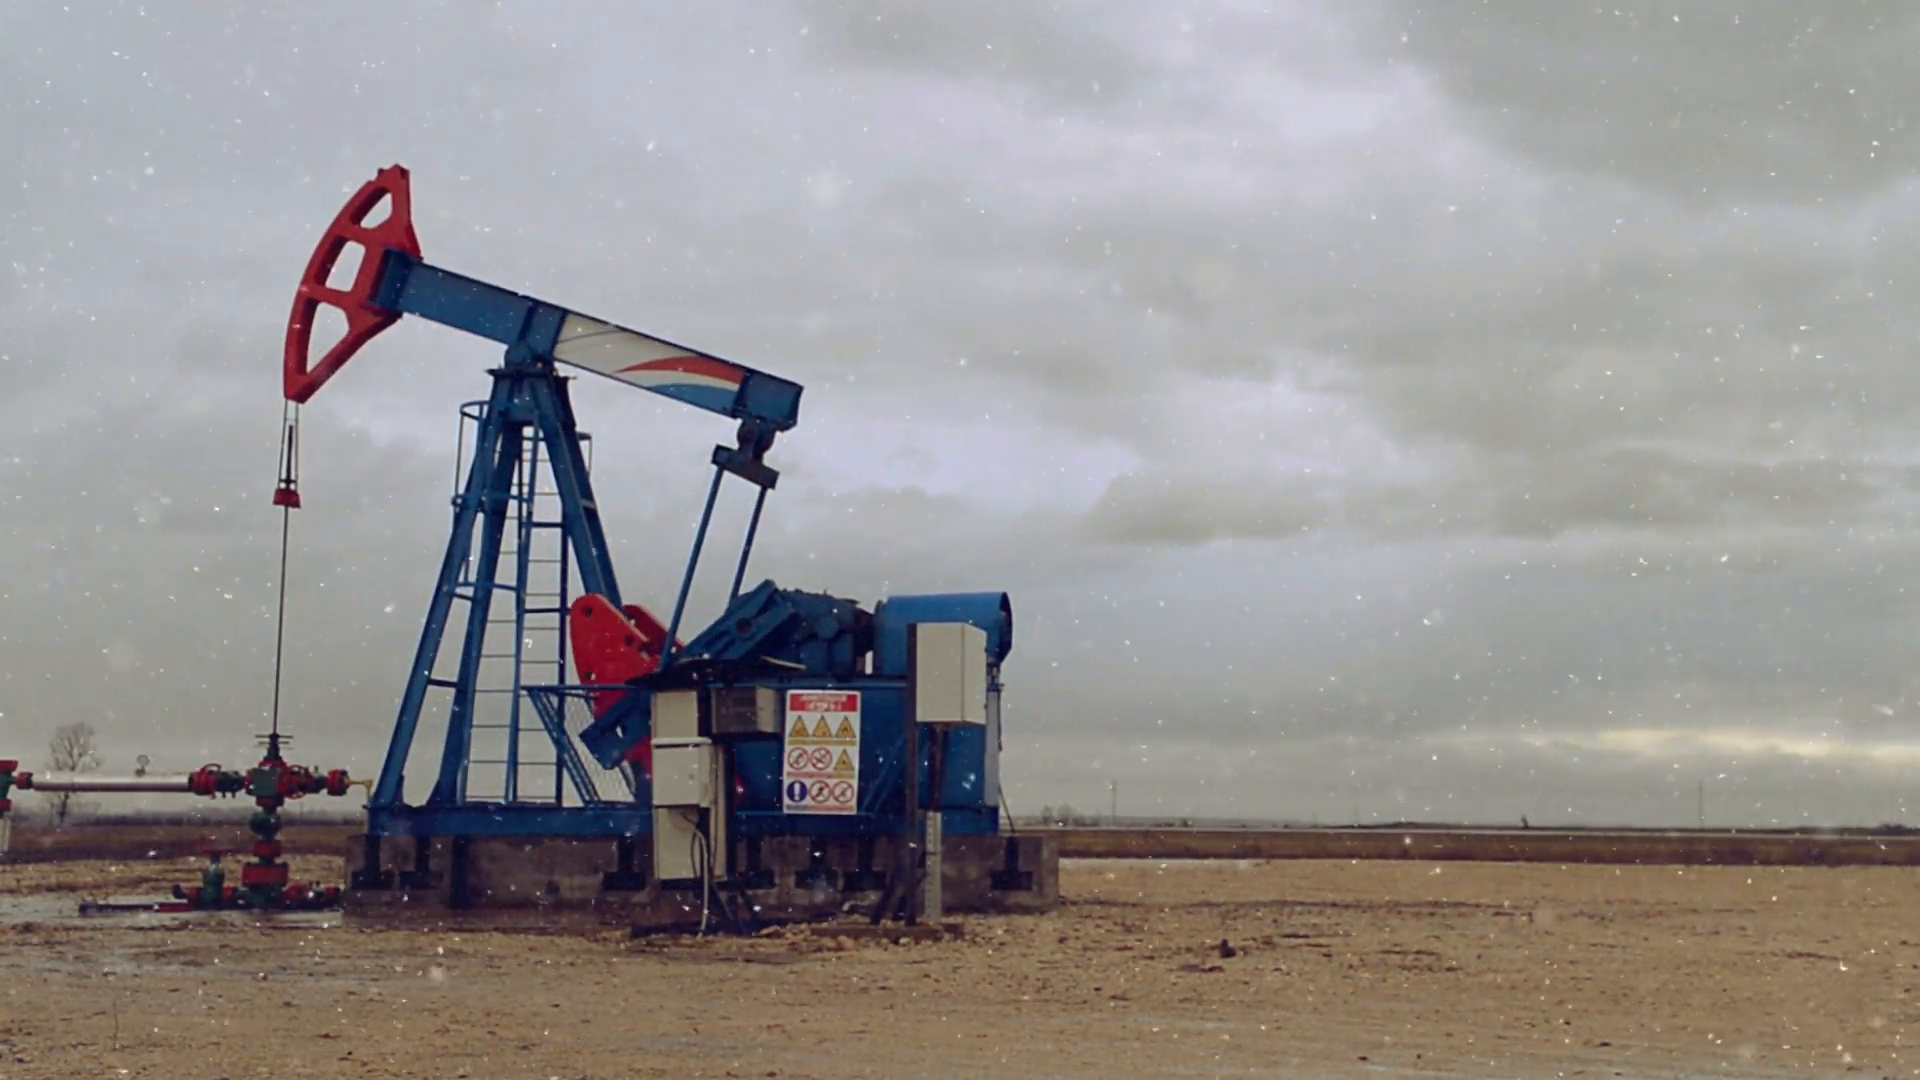 Pumpjack Oil Pump Operating On Natural Gas In The Field Pumping From The  Oil Well During The Winter Snofall Season. 1920x1080 Full Hd Footage. - Natural Gas PNG HD